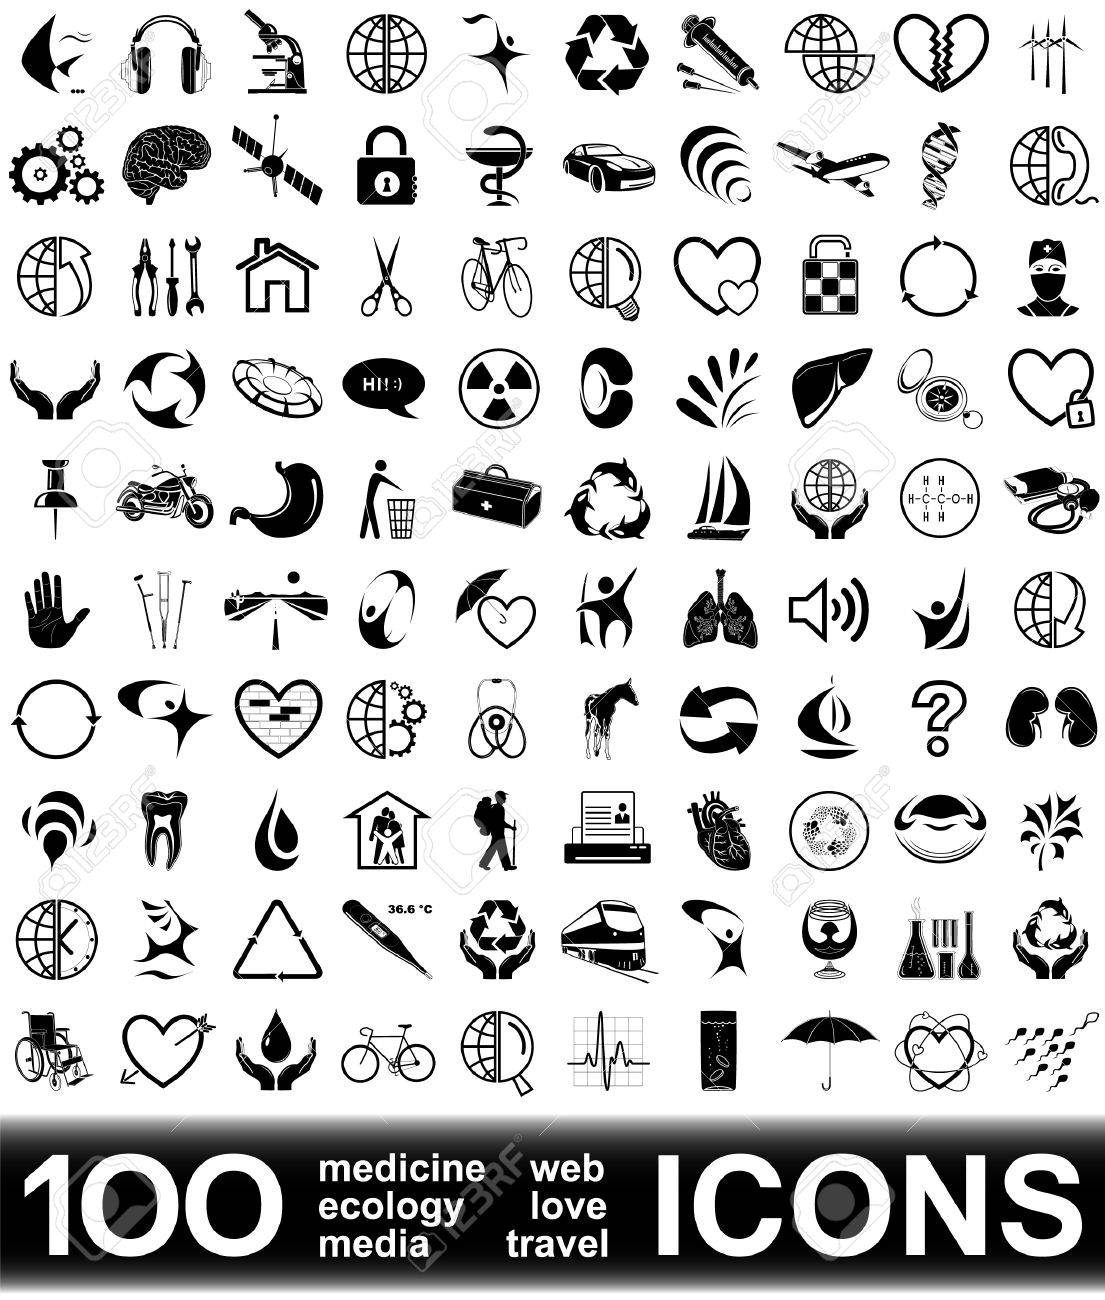 100 vector icons. HIGH RESOLUTION. Stock Vector - 4736370